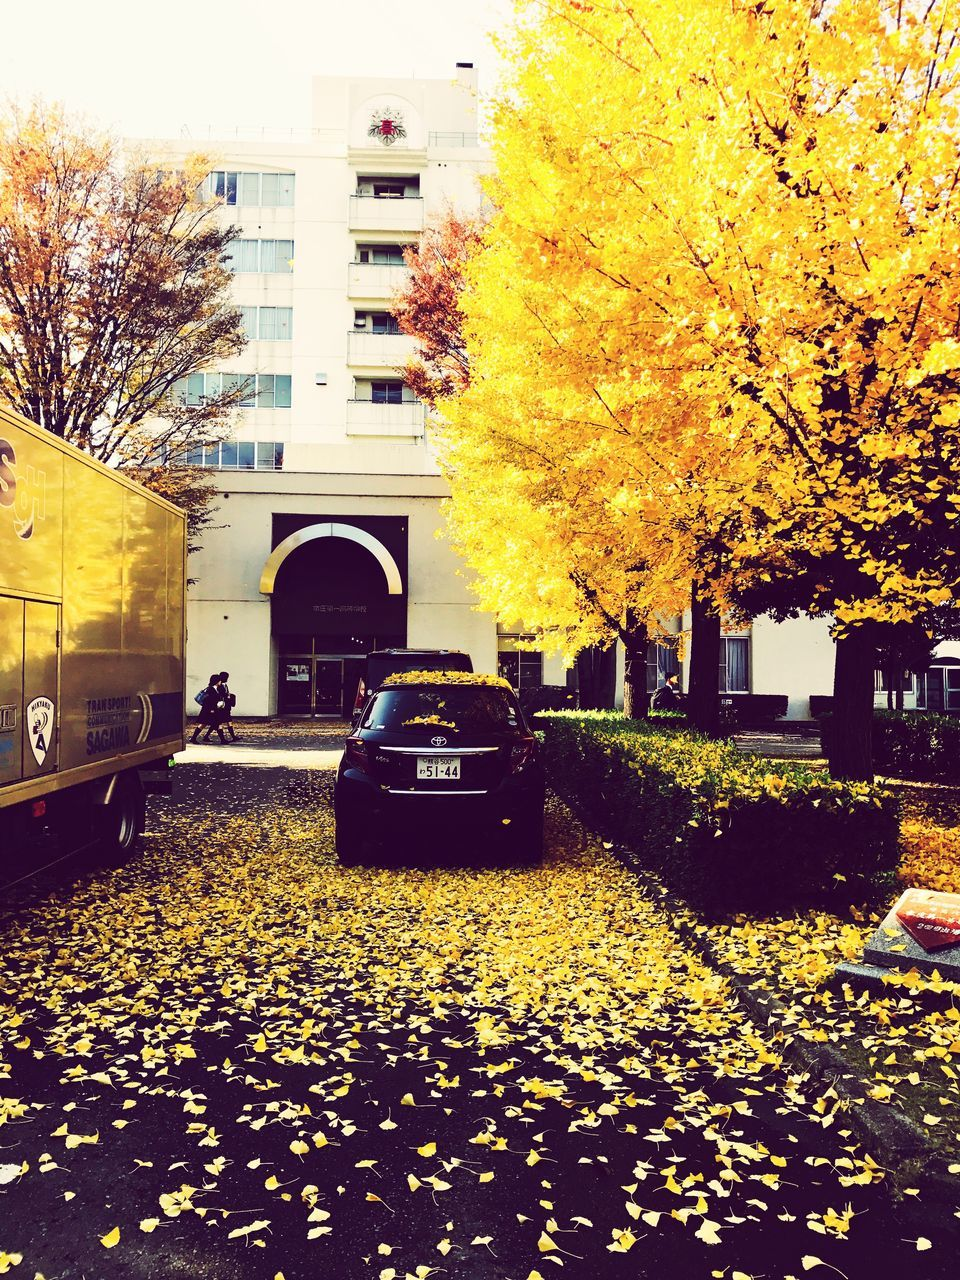 tree, architecture, building exterior, built structure, autumn, yellow, outdoors, change, no people, city, nature, flower, day, sky